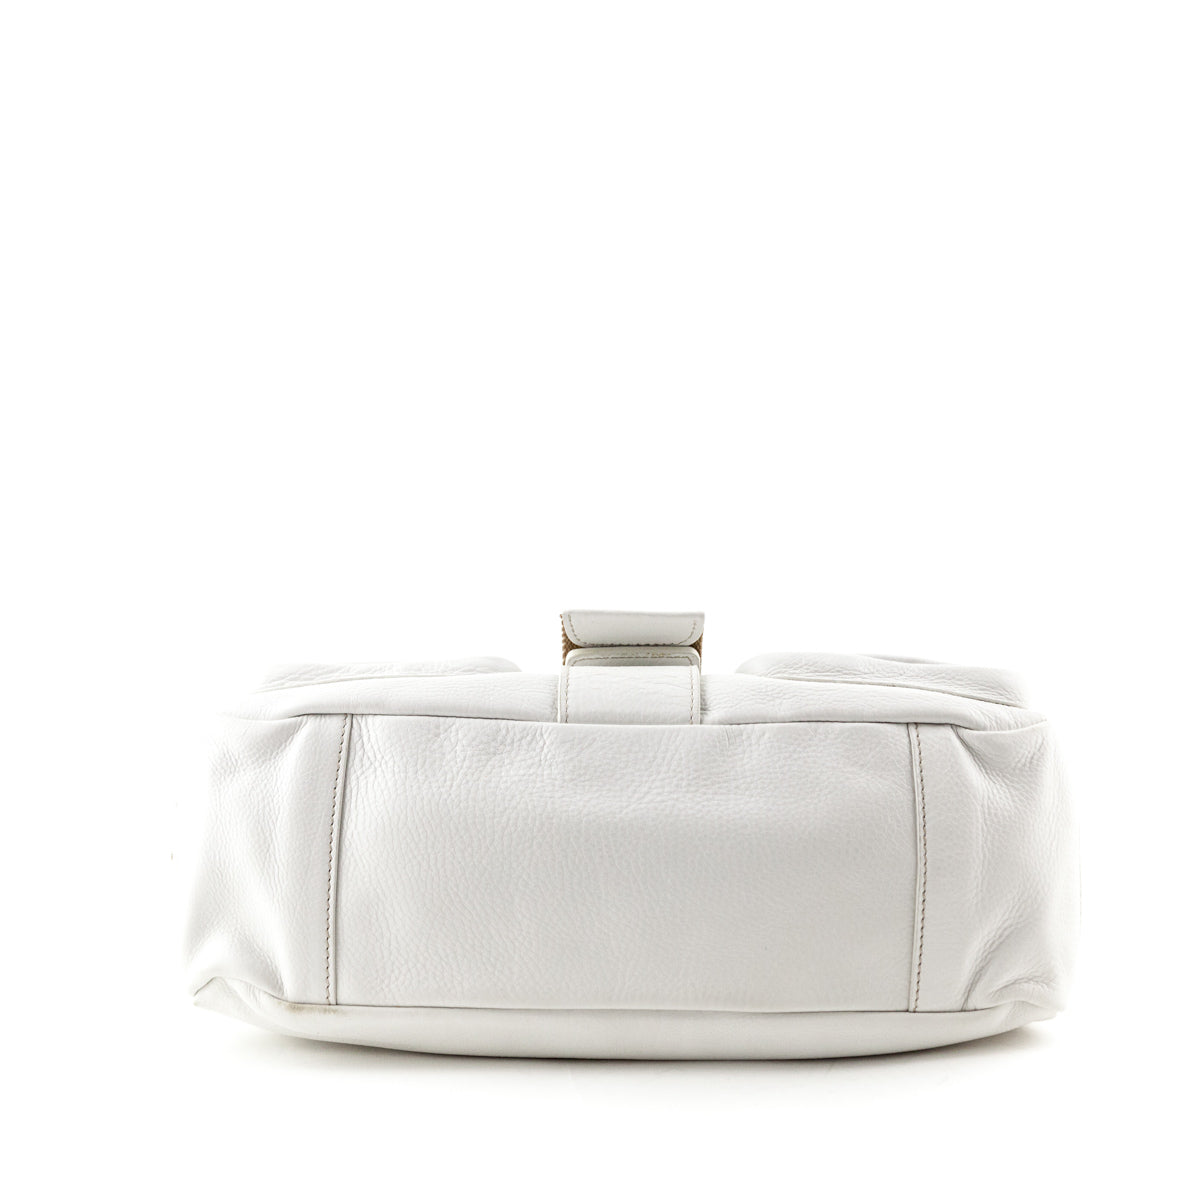 55c82bf34d ... promo code for prada white leather shoulder bag love that bag preowned  authentic designer handbags 8a836